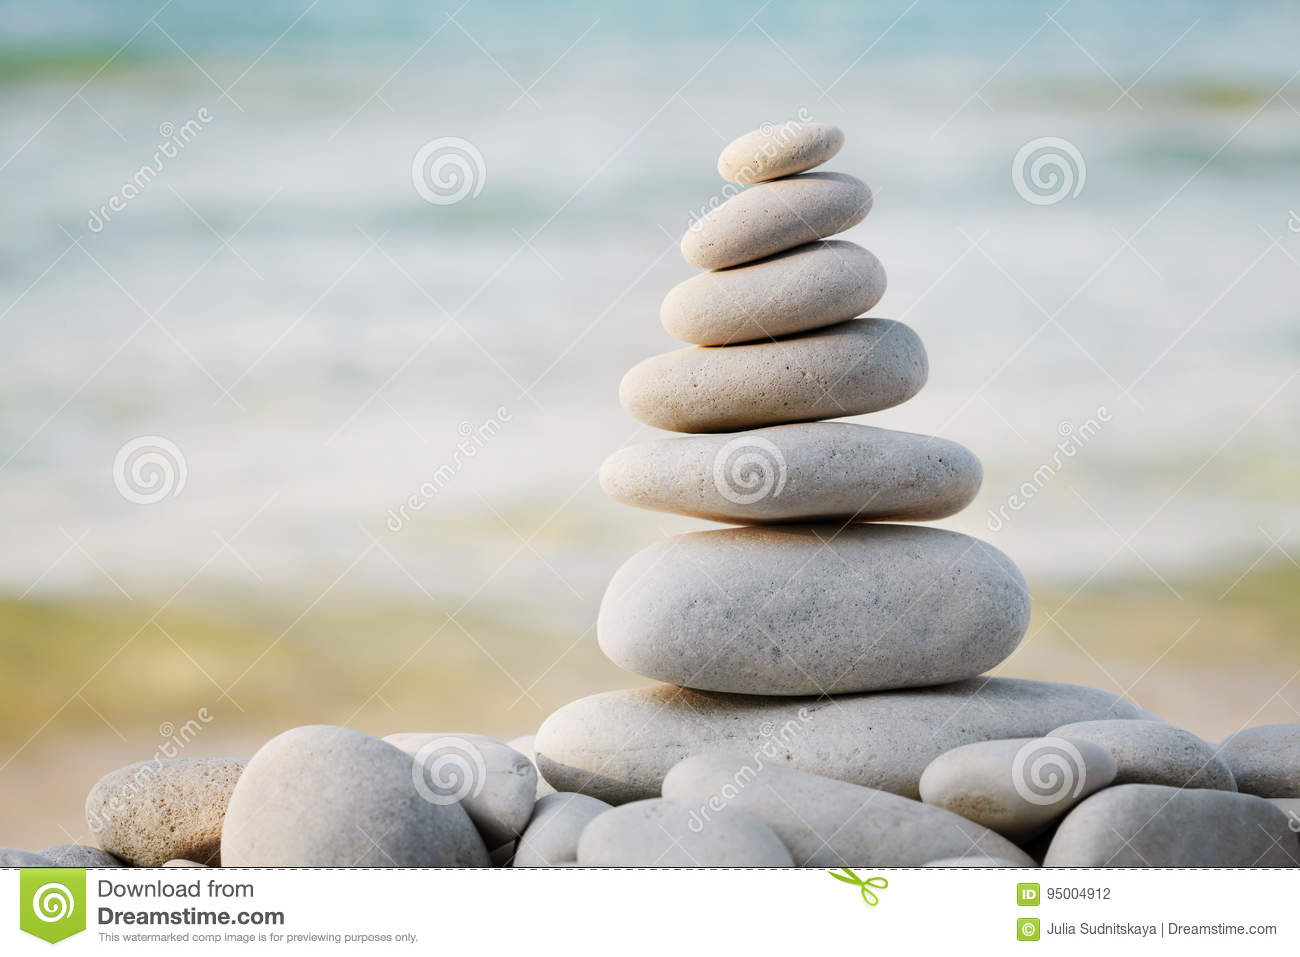 Stack of white pebbles stone against sea background for spa, balance, meditation and zen theme.